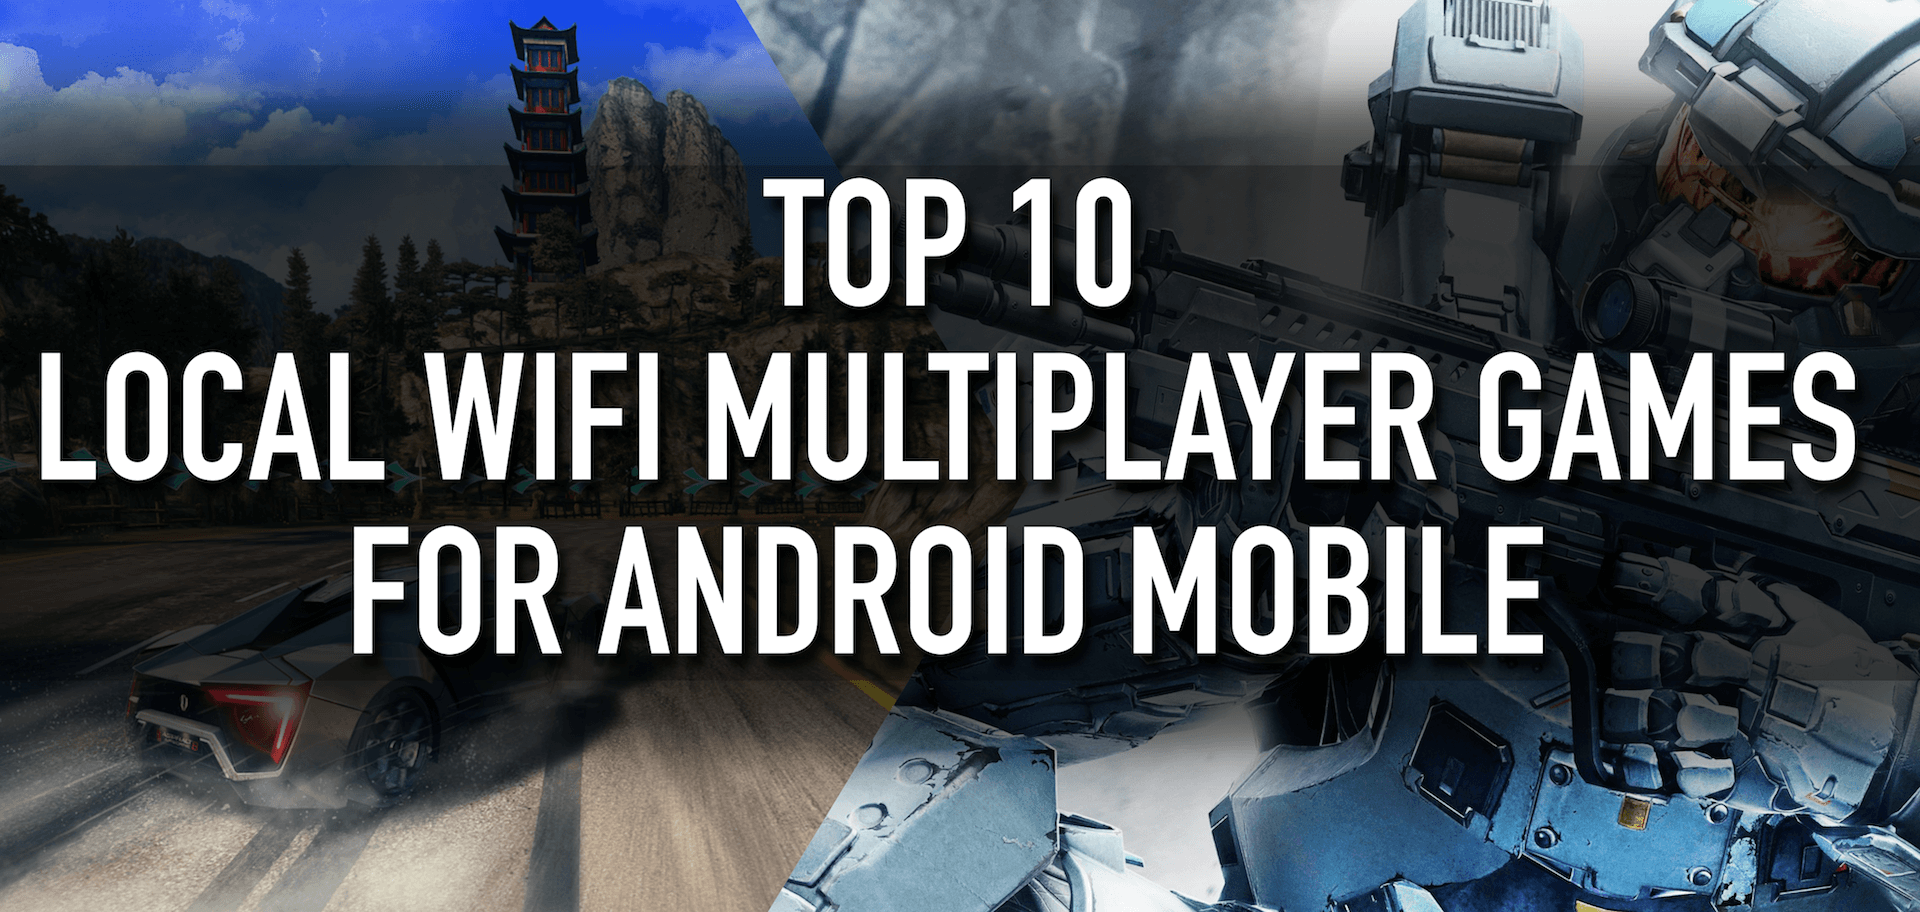 Top 10 Best Local WiFi Multiplayer(Offline-LAN) Games for Android Mobile